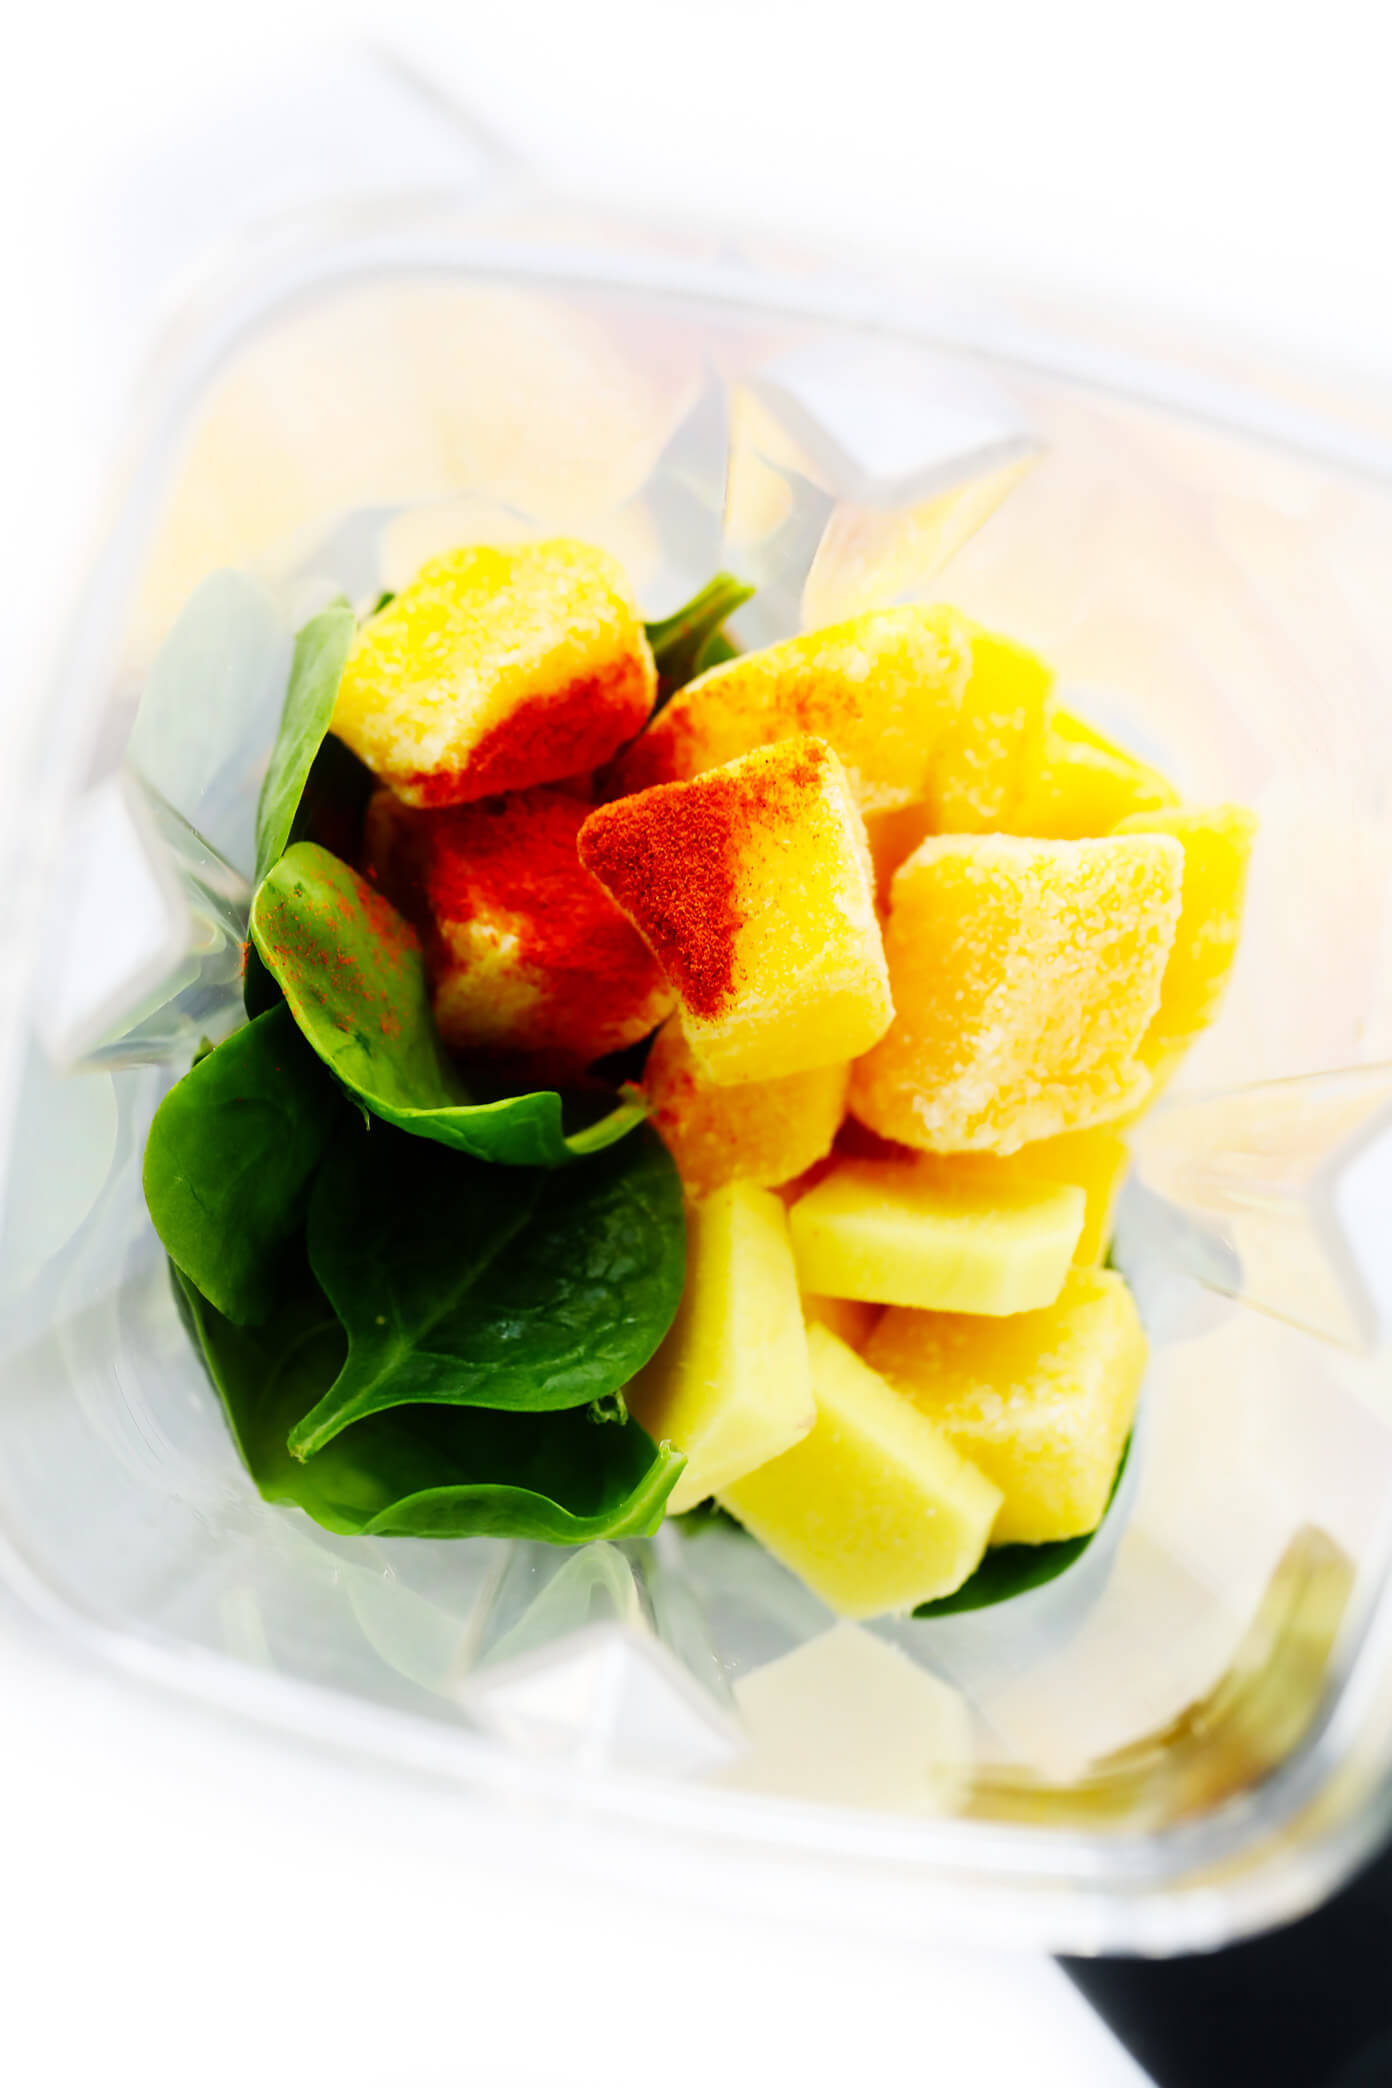 Mango Green Smoothie Ingredients